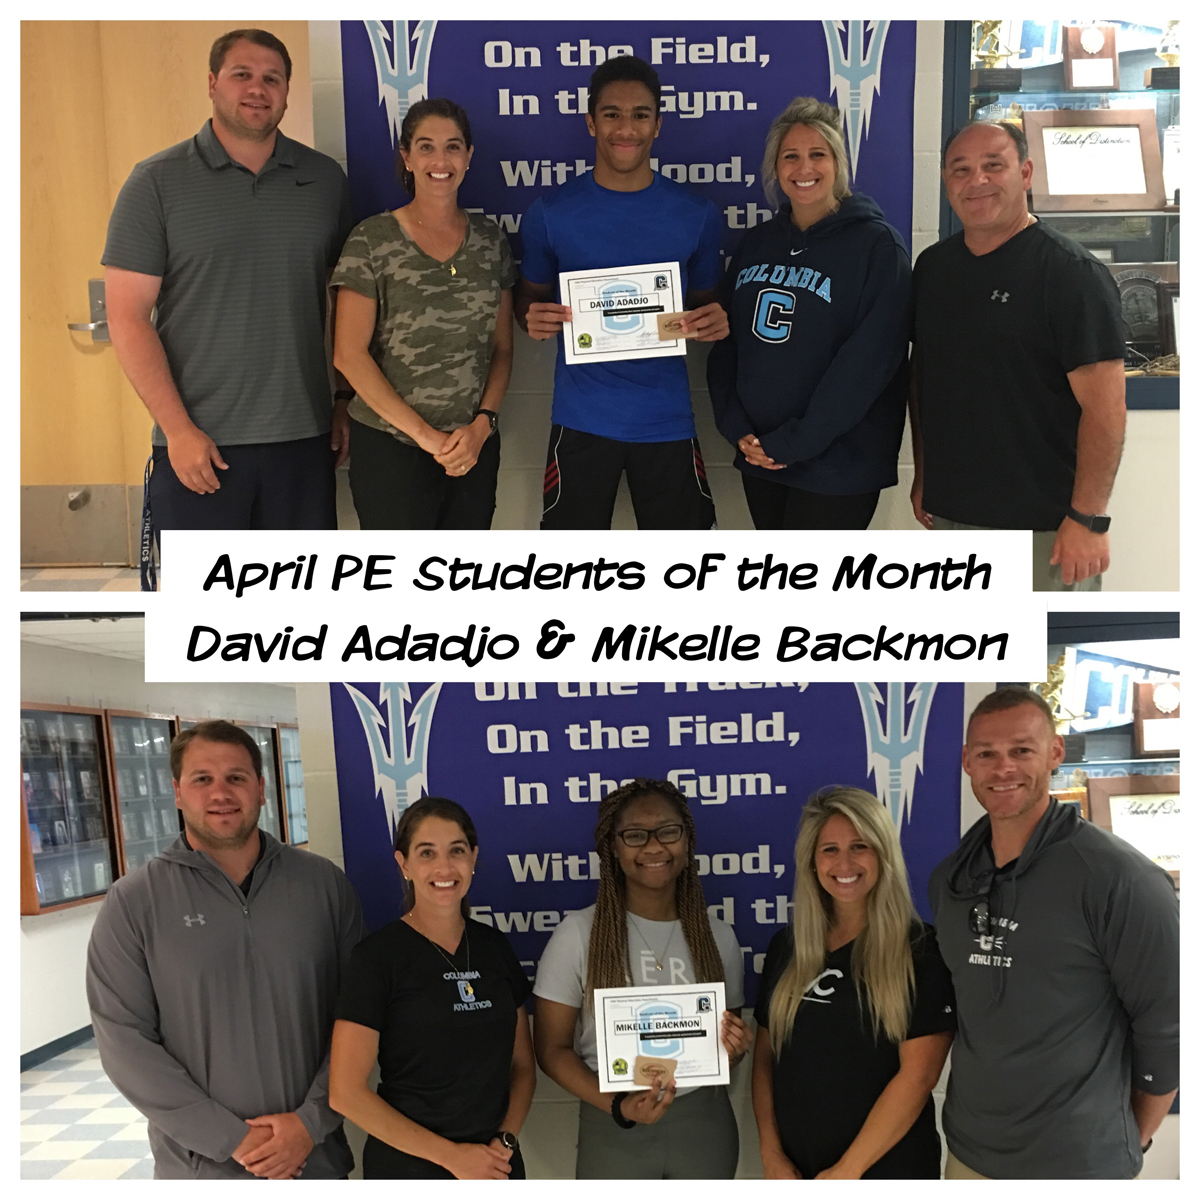 April PE Students of the Month